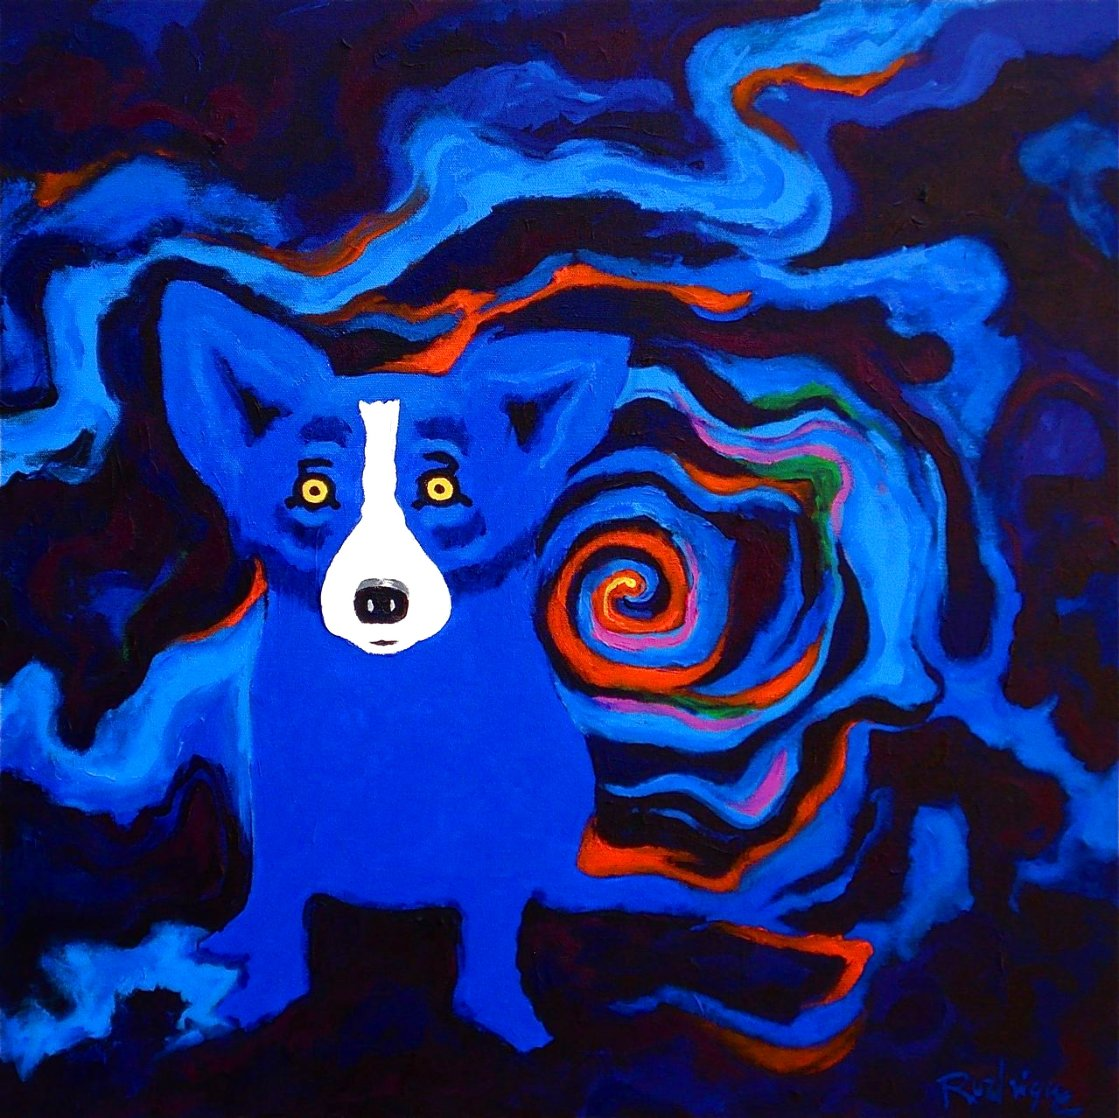 Volcano Moon 2008 28x28 Original Painting by Blue Dog George Rodrigue